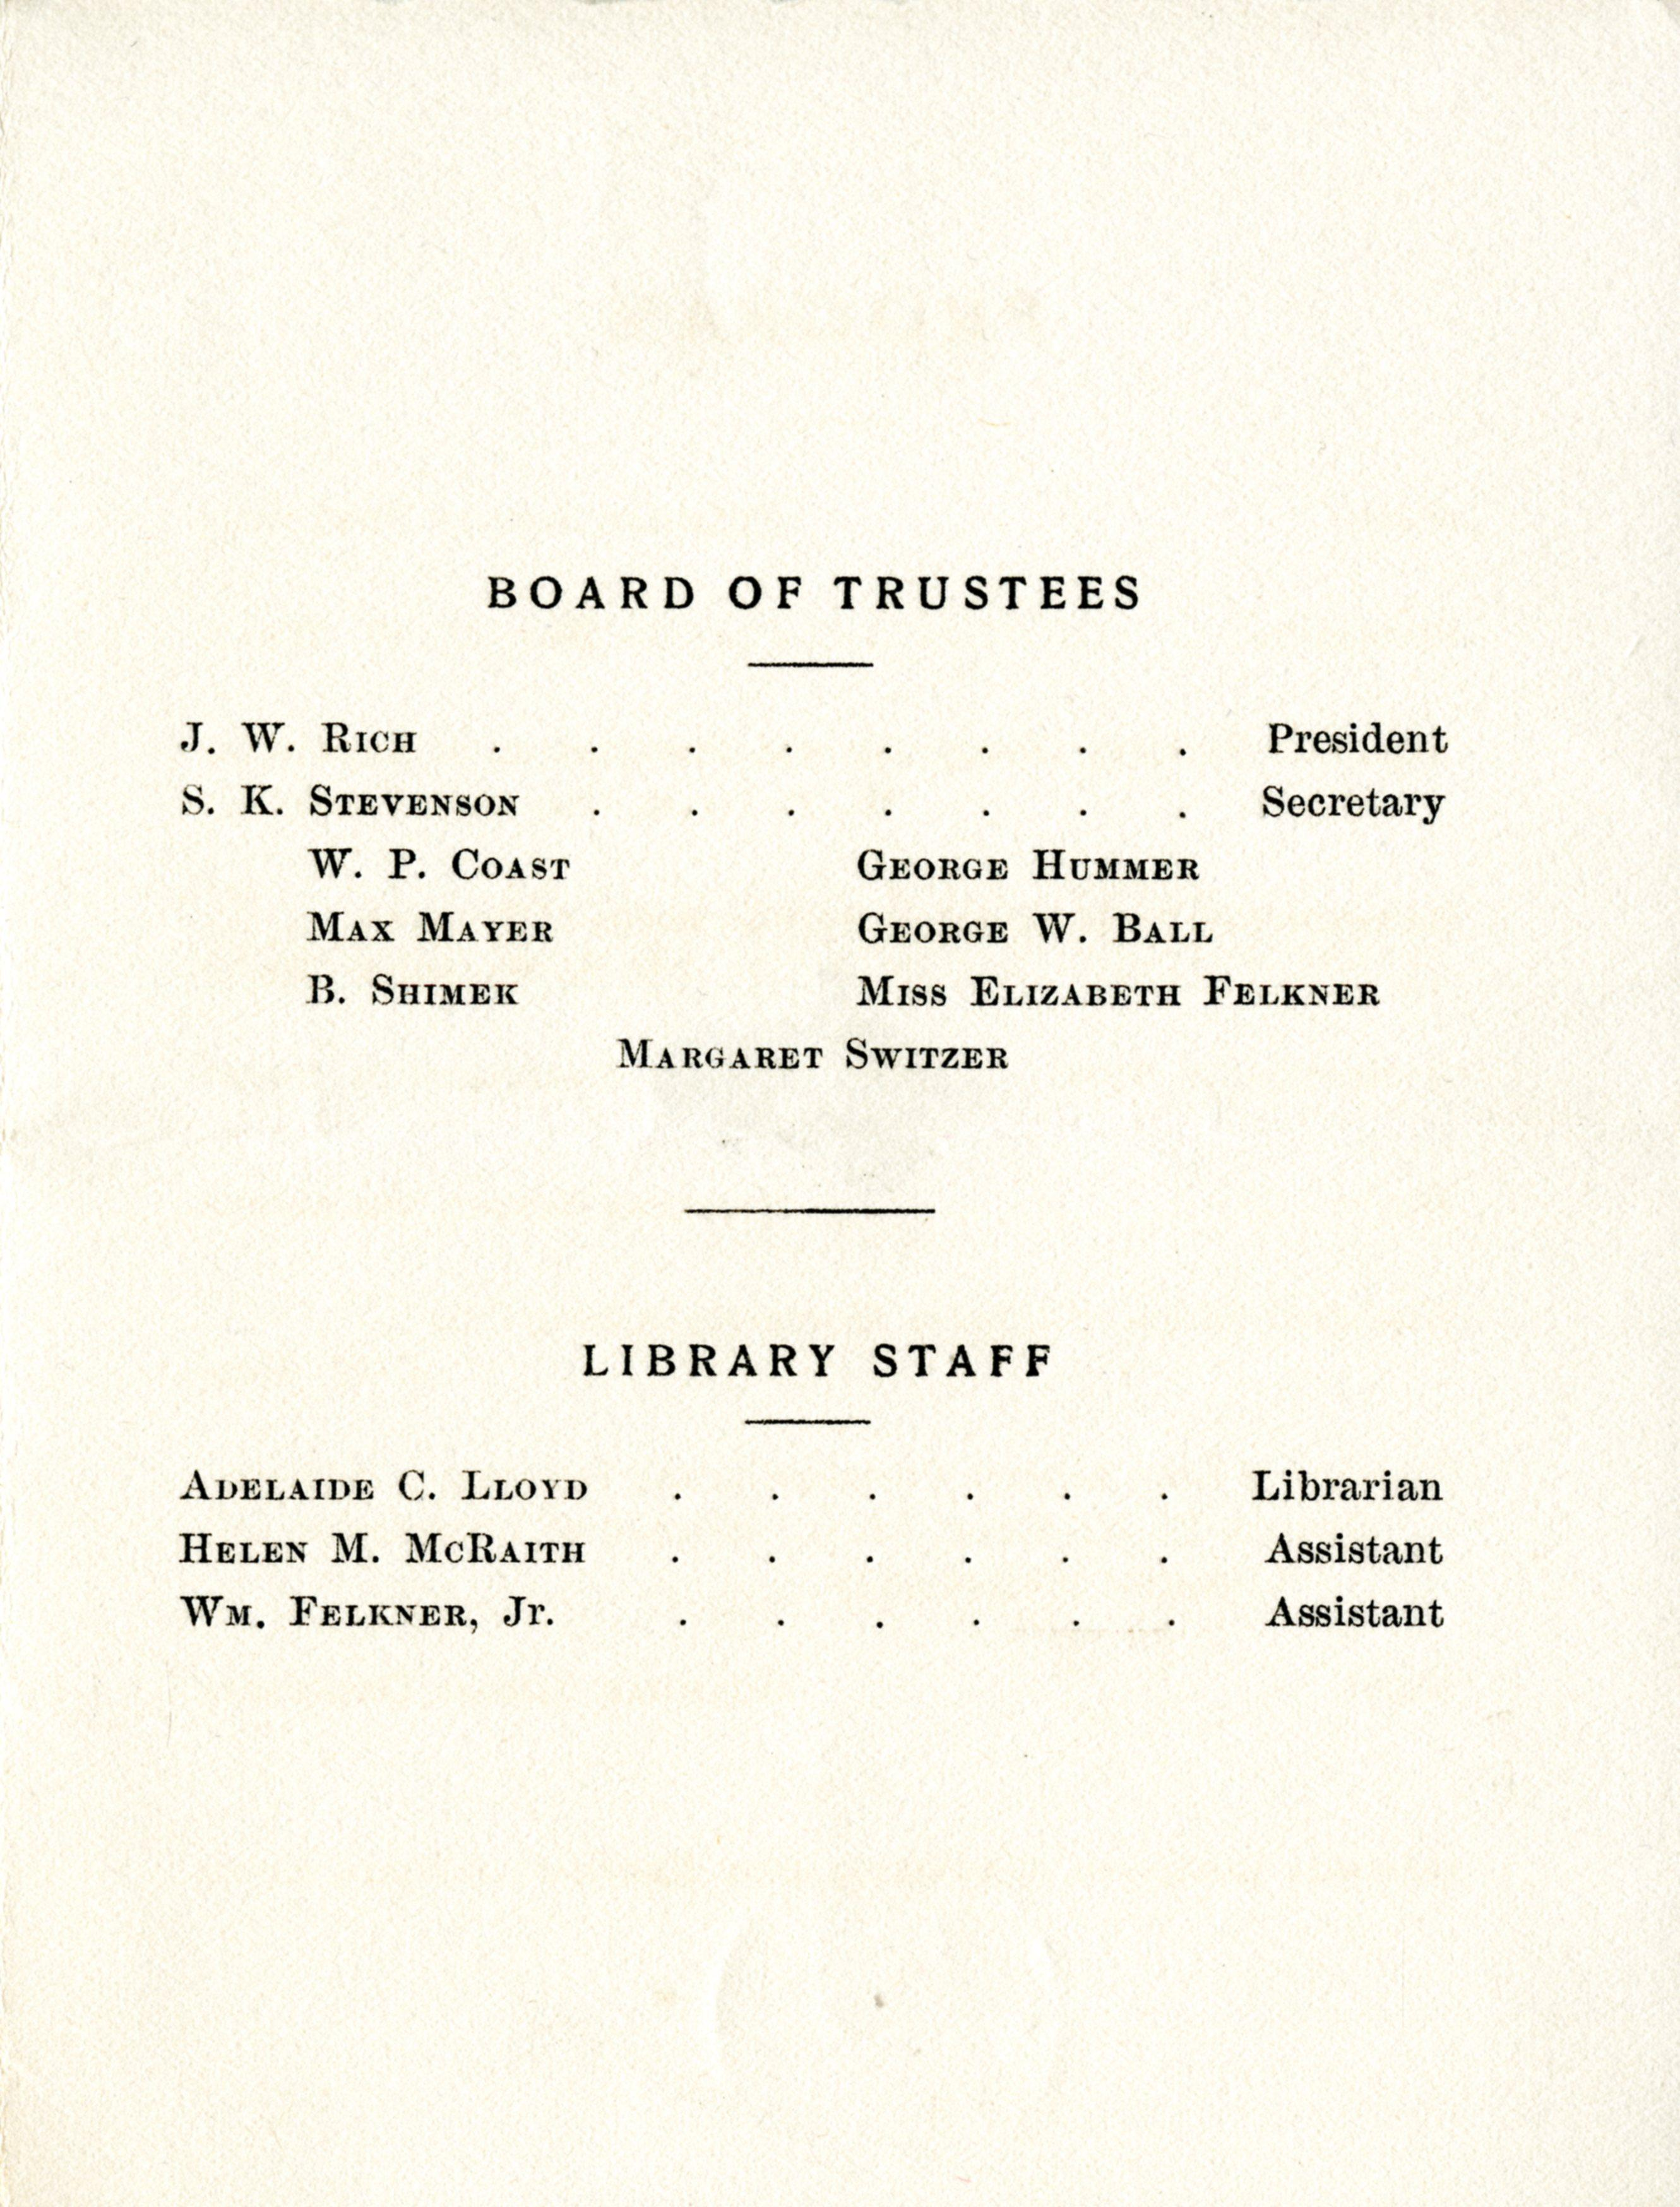 The second page of the program, including names of the trustees and library staff